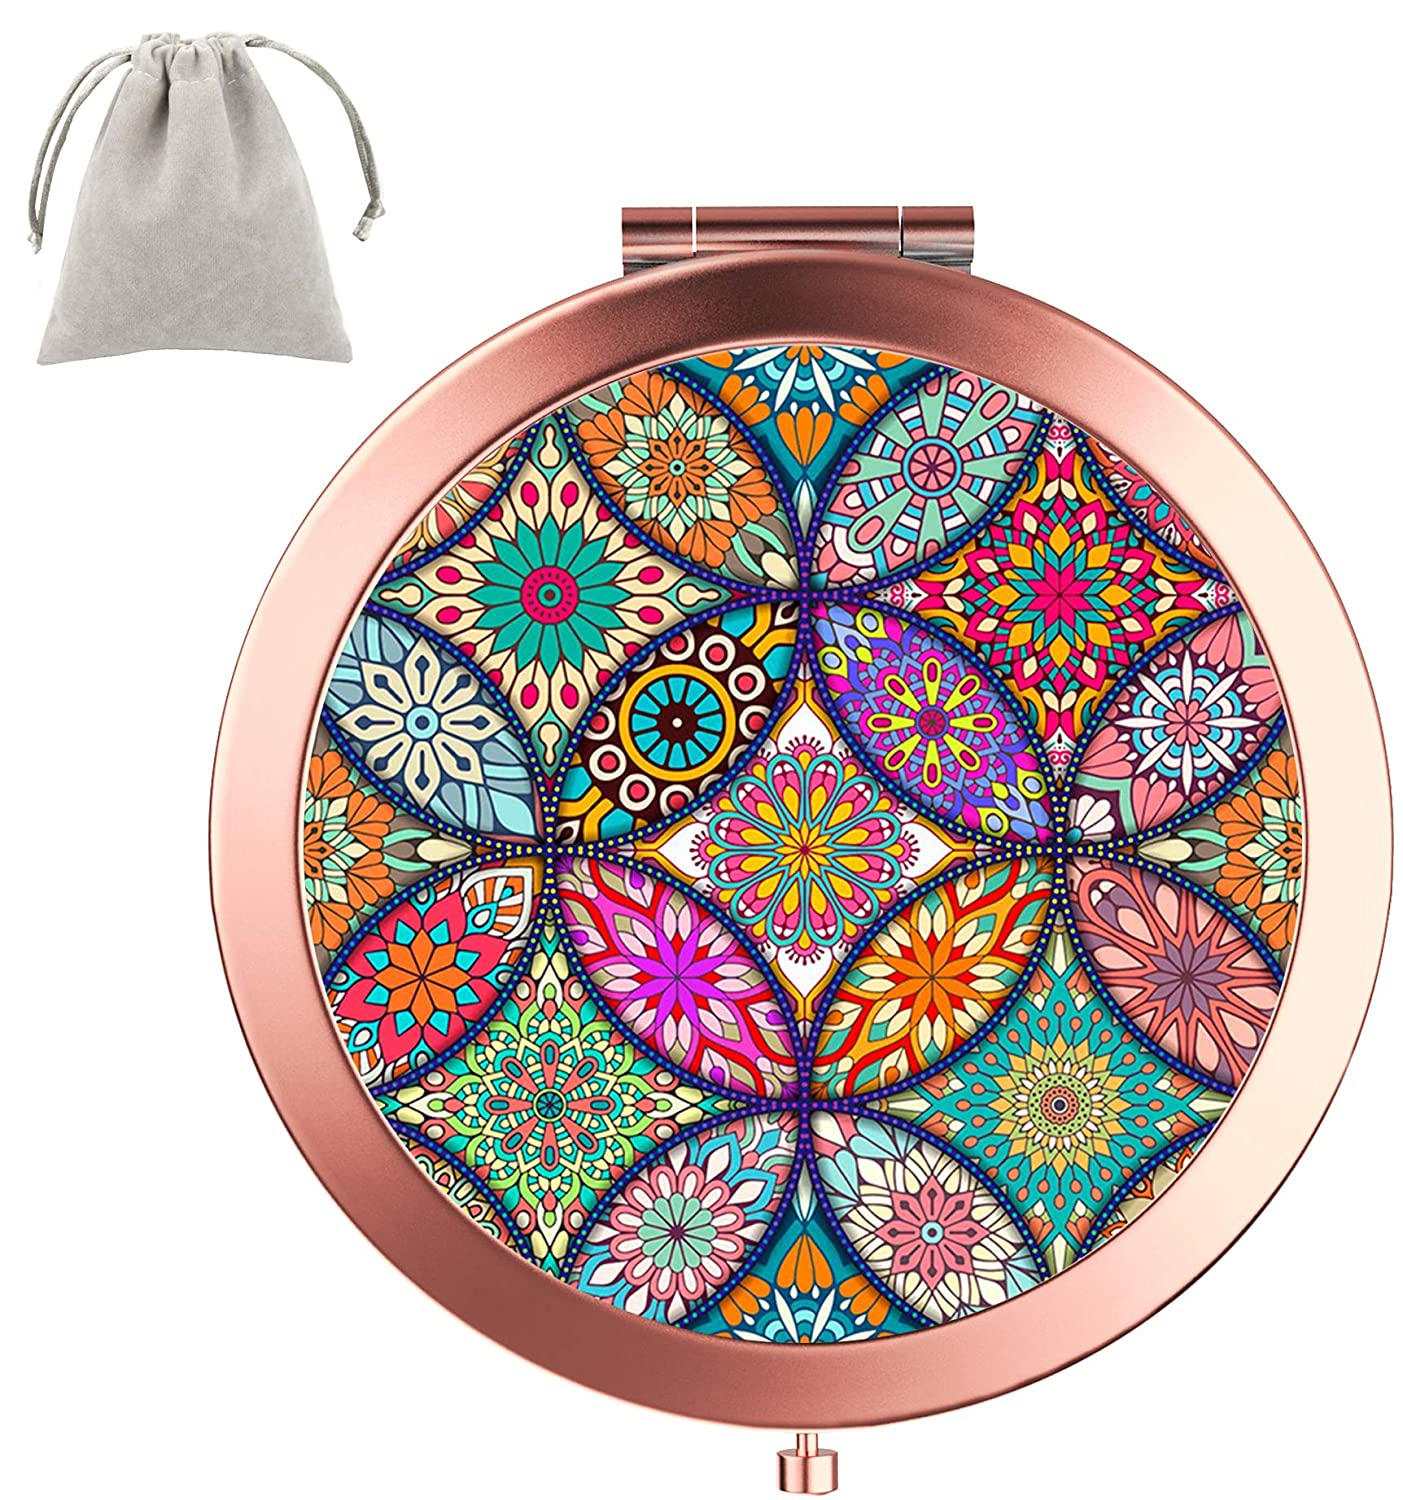 Dynippy Compact Mirror Round Rose Gold MakeUp Mirror Folding Mini Pocket Mirror Portable Hand Mirror Double-sided With 2 x 1x Magnification for Woman Mother kids Great Gift mandala